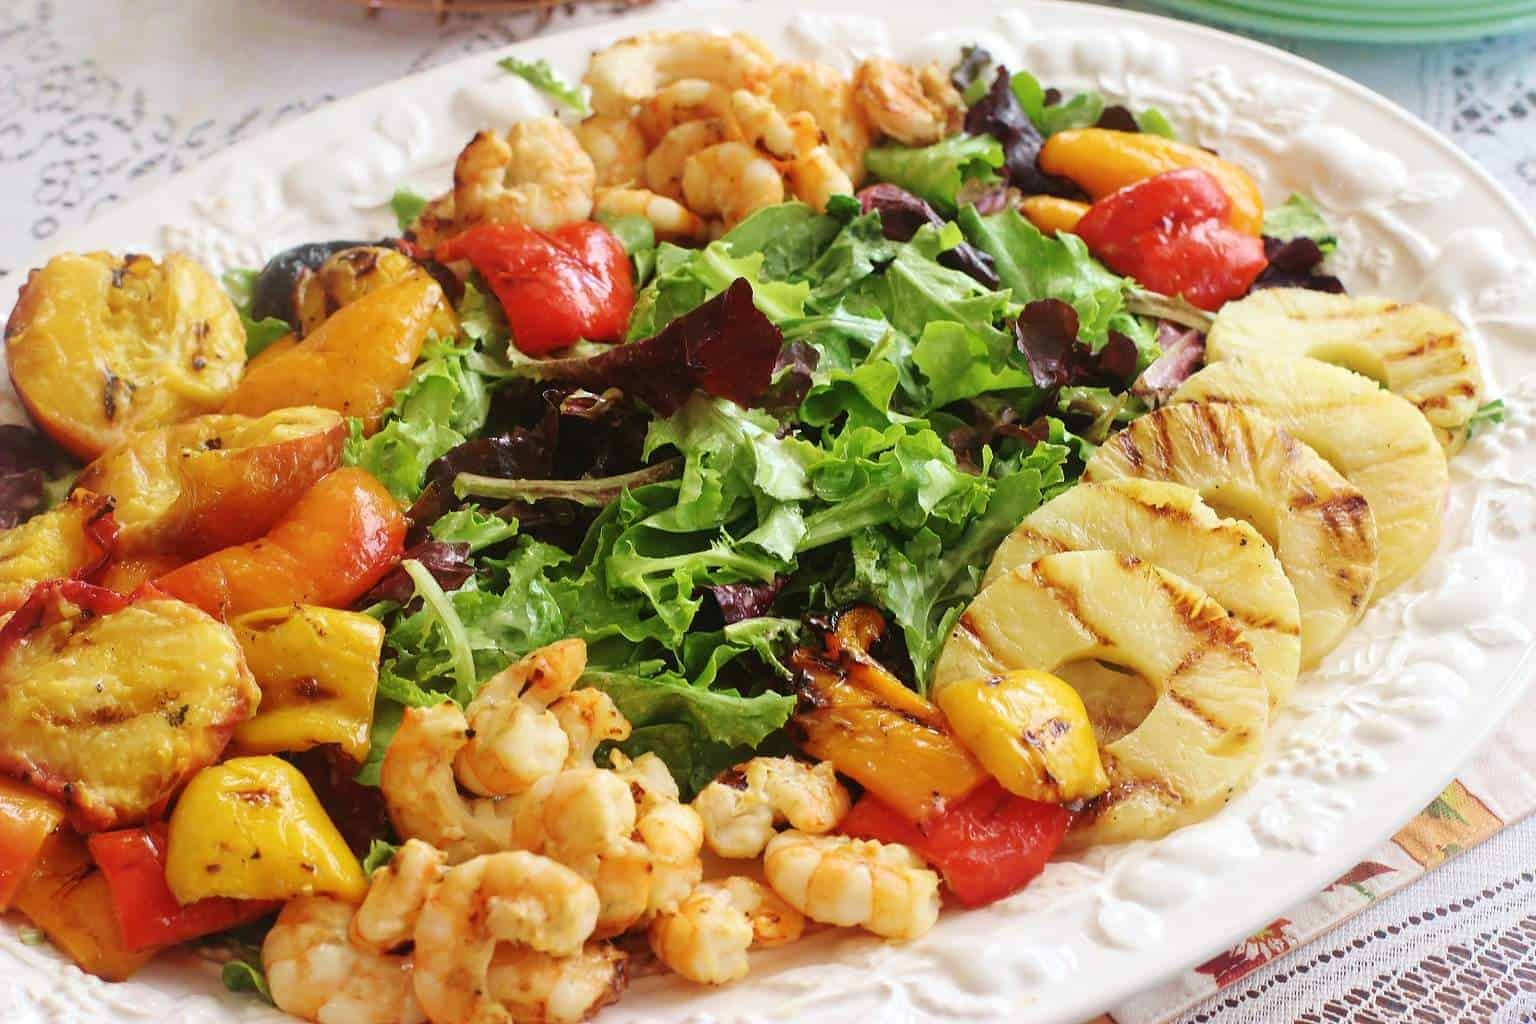 Grilled Shrimp and Fruit Salad